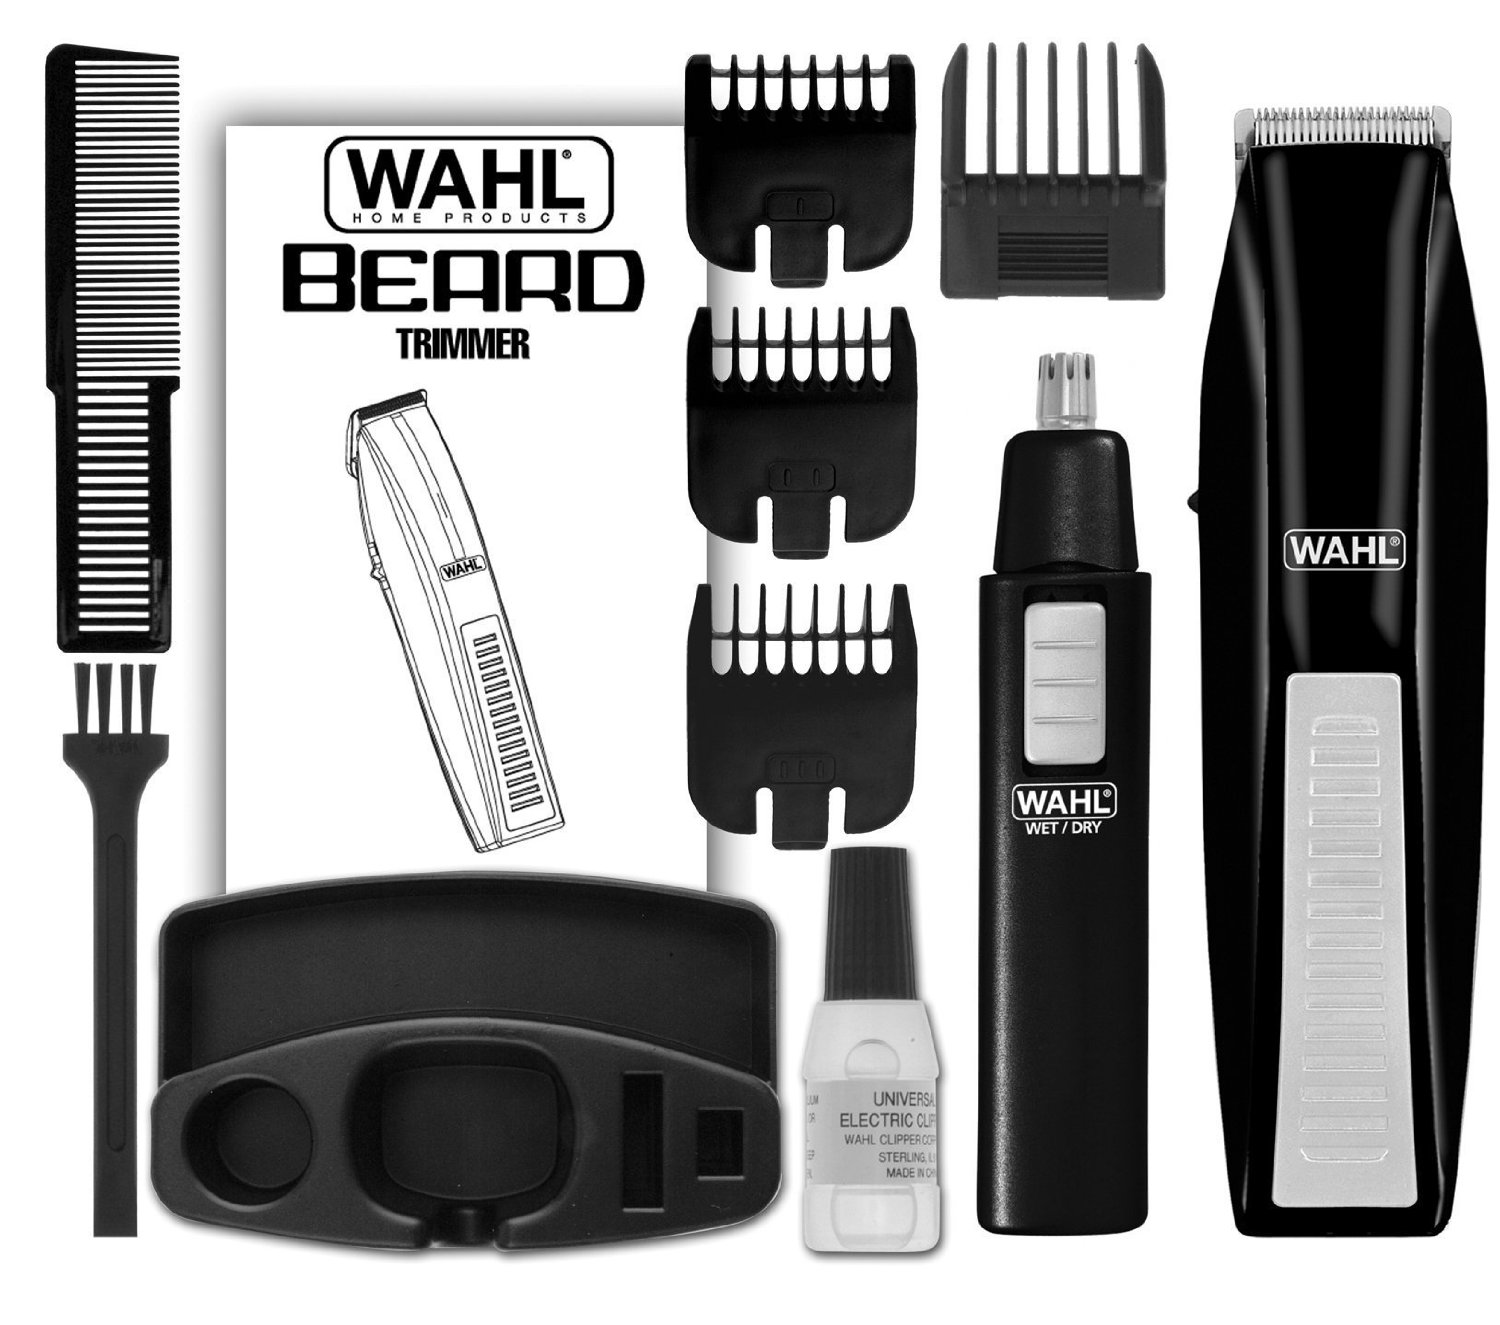 the best beard trimmer that you can find. Black Bedroom Furniture Sets. Home Design Ideas